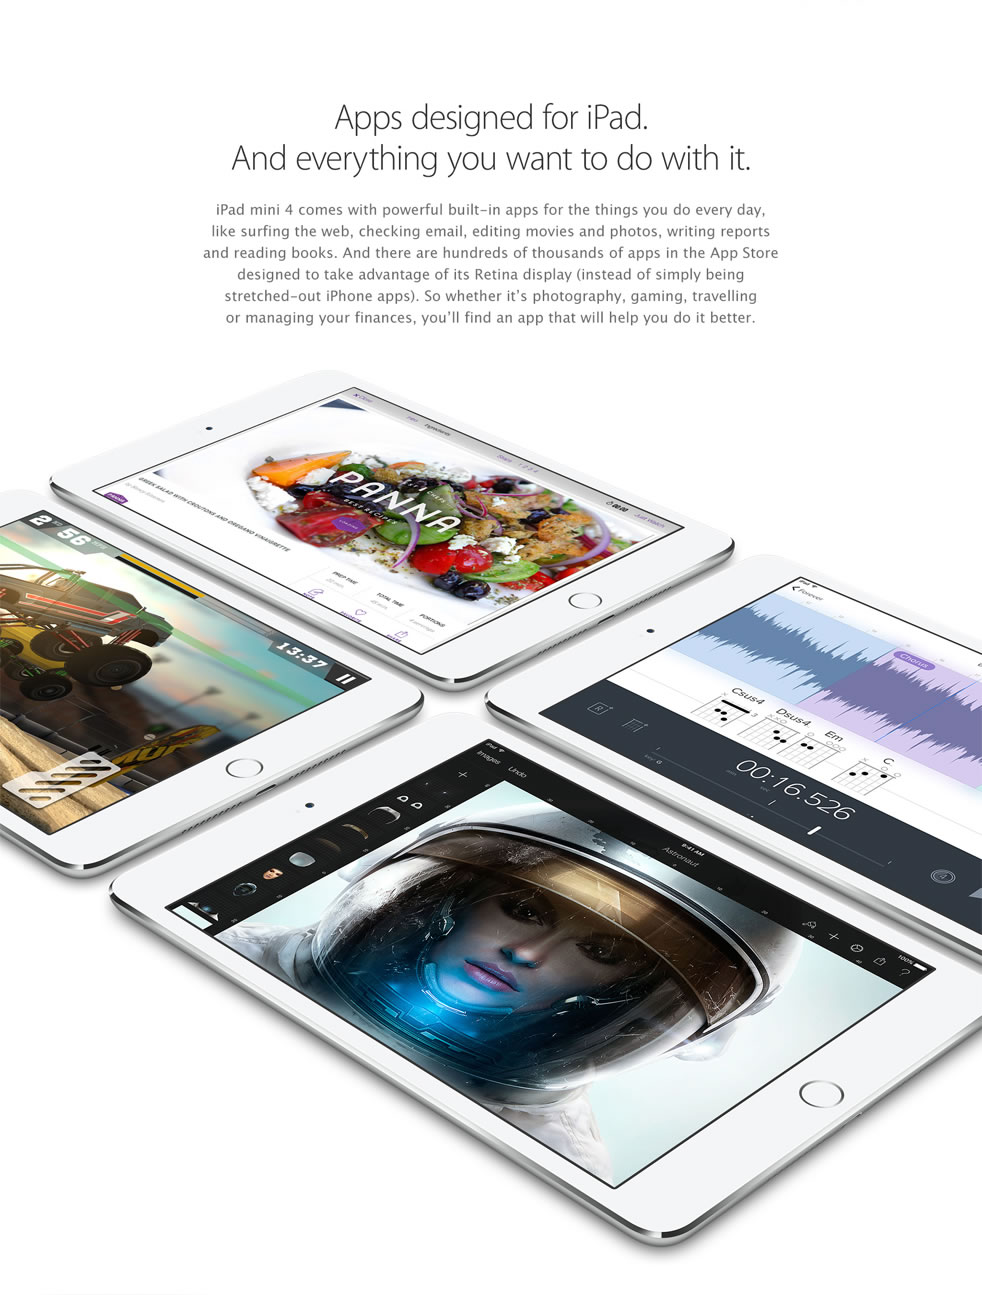 Apps designed for iPad. And everything you want to do with it.